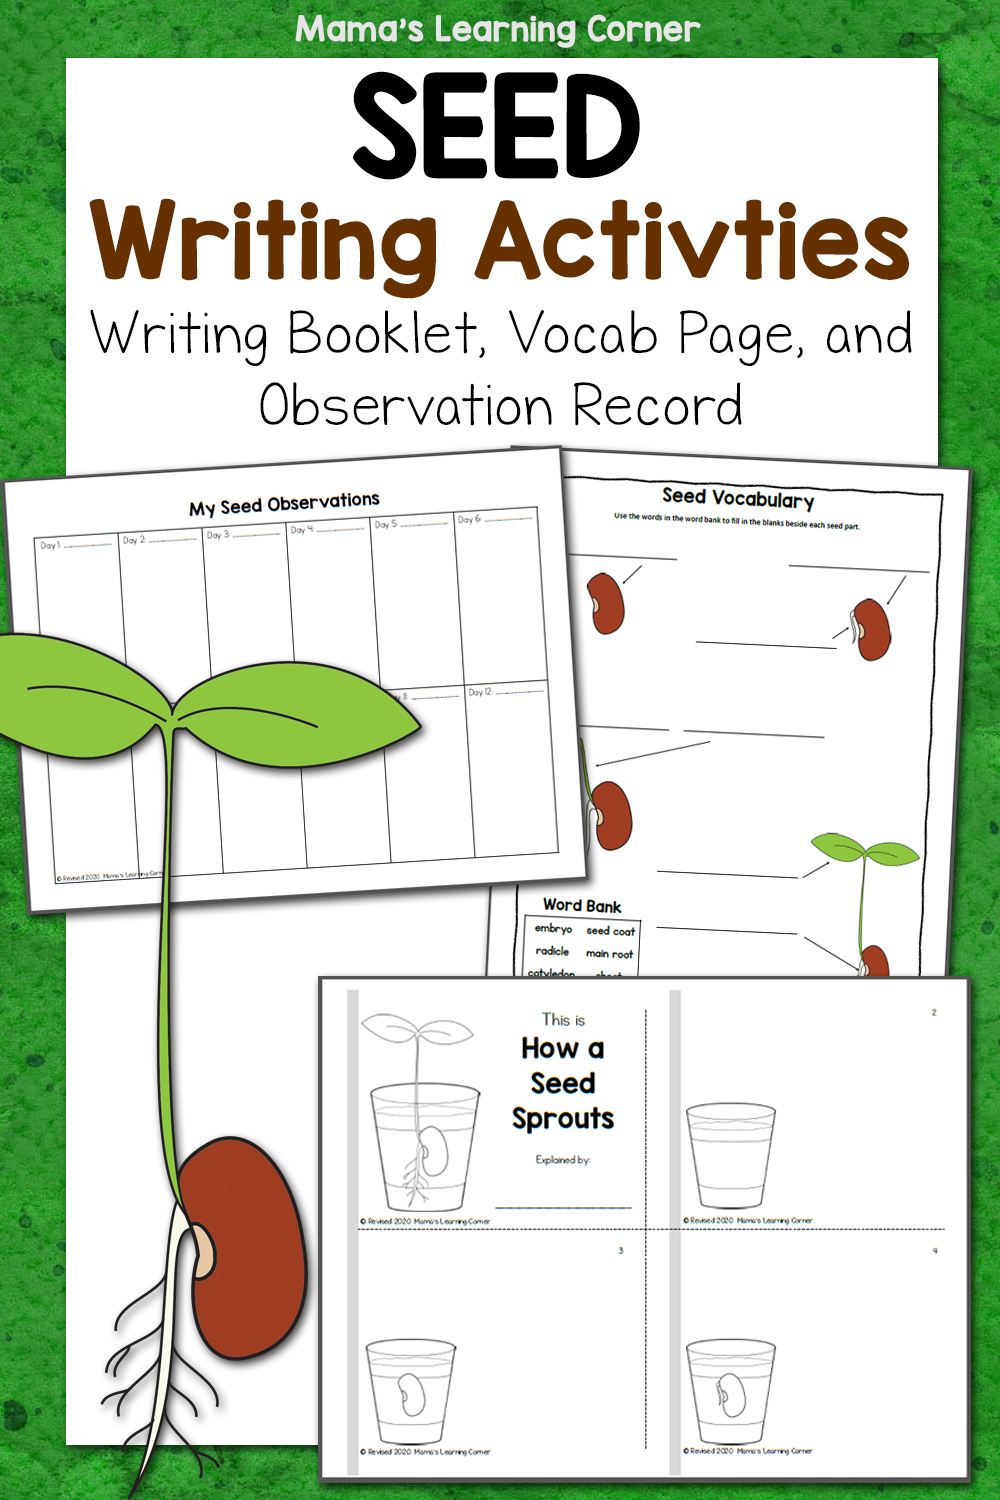 hight resolution of Seed Writing Activities - Mamas Learning Corner